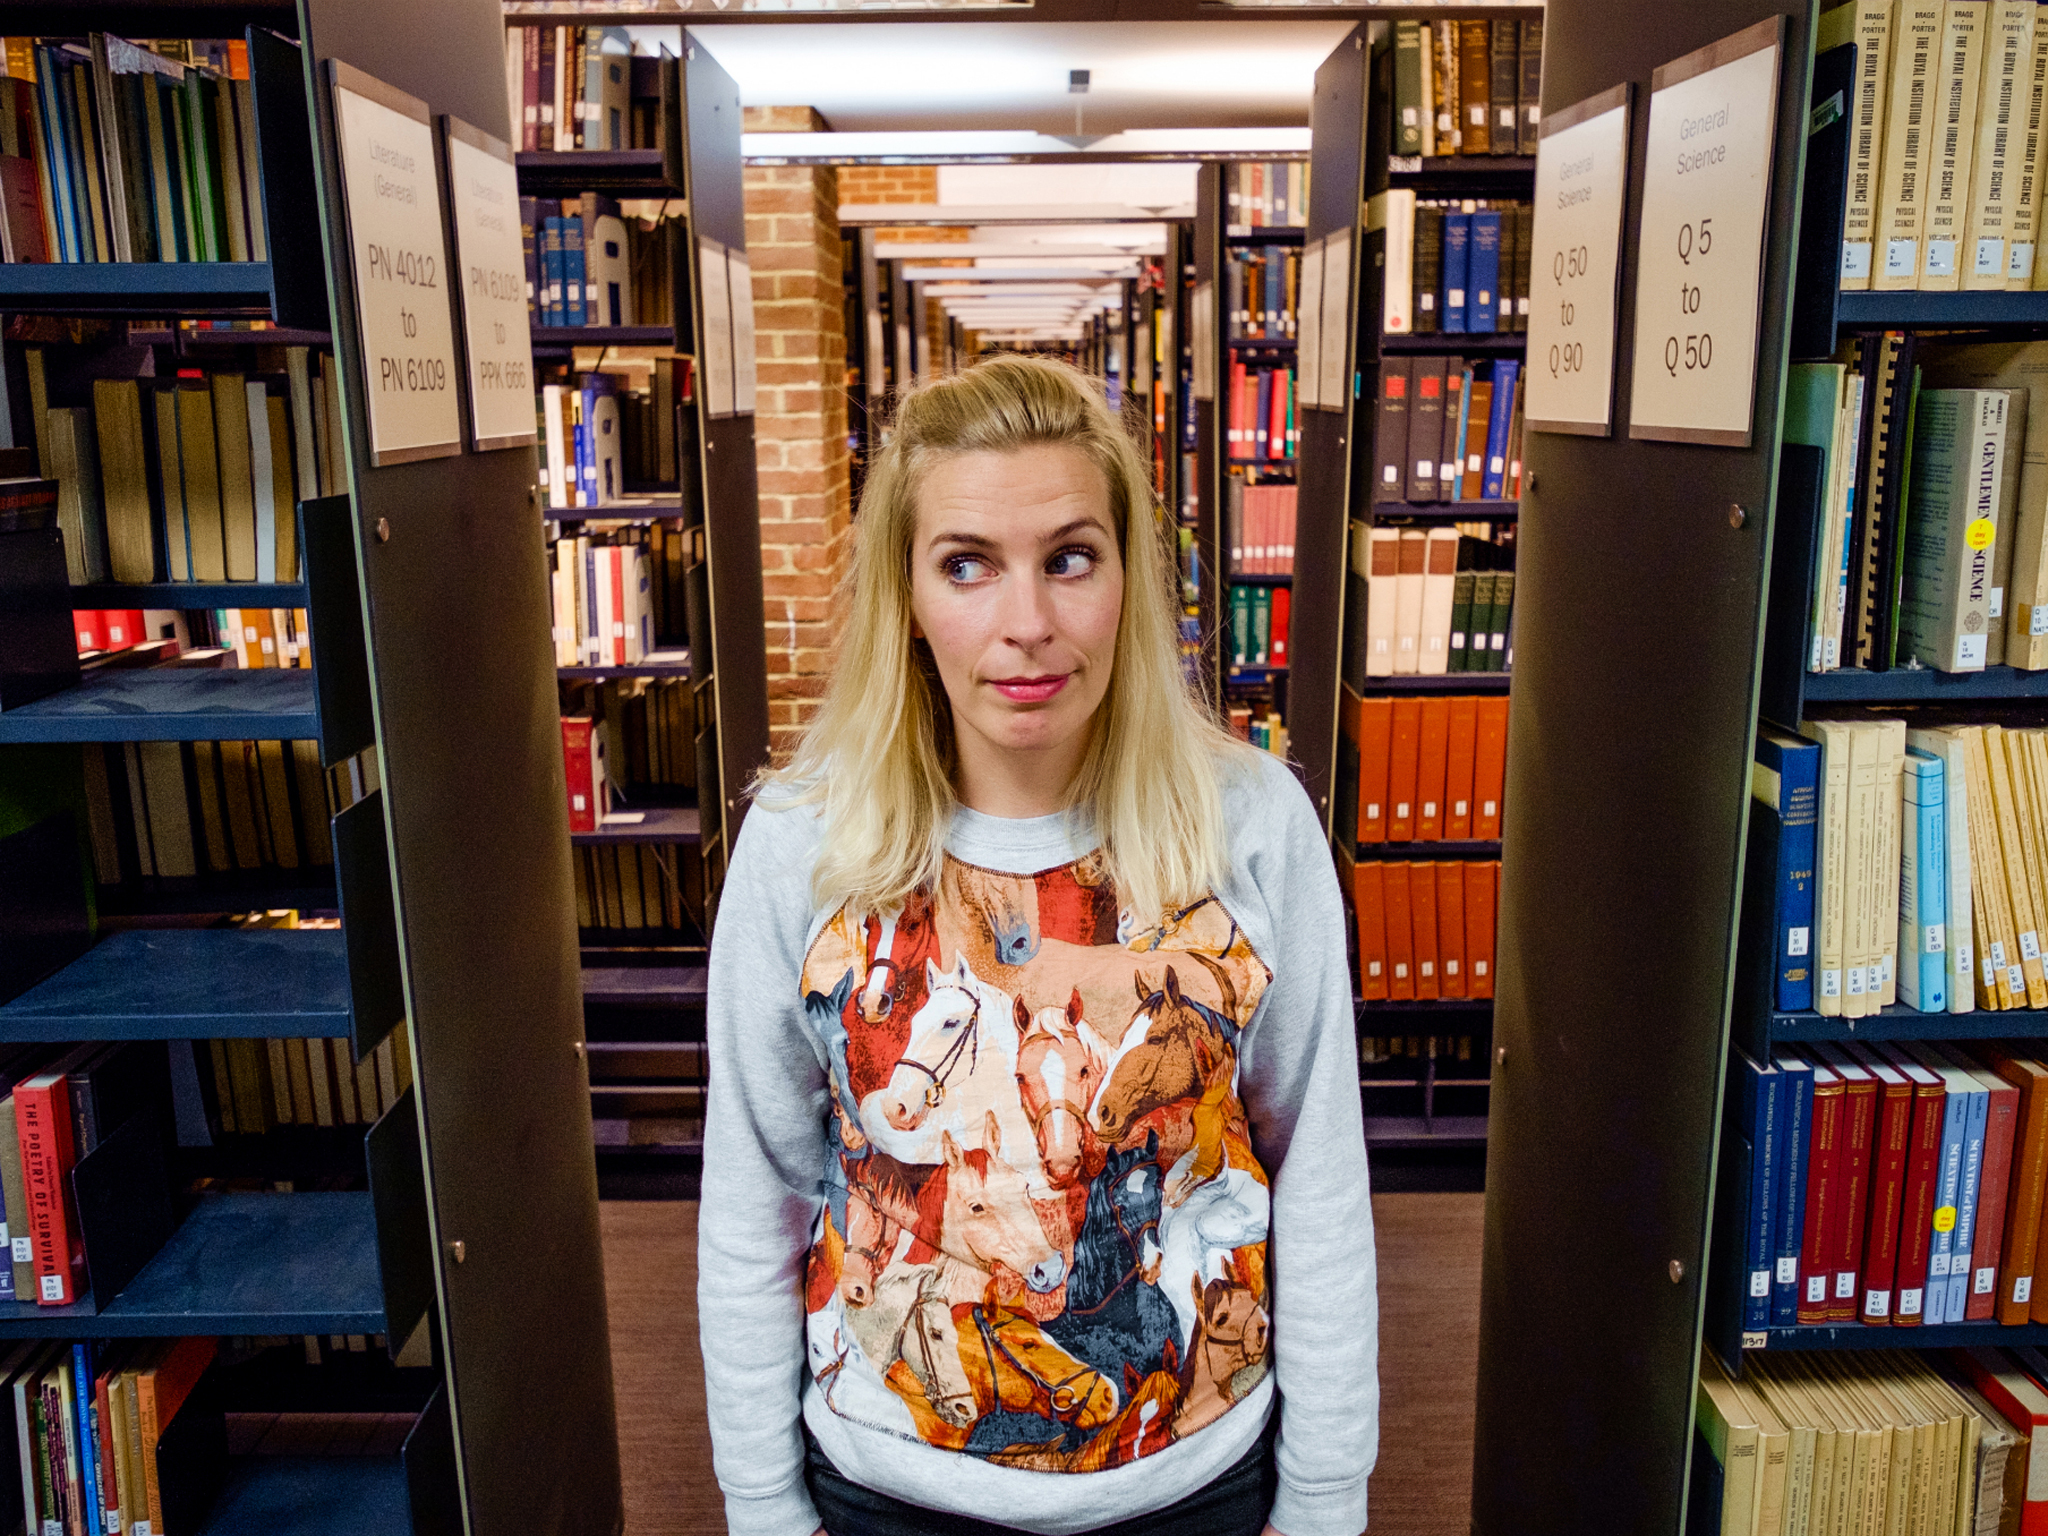 The 100 best comedy movies, Sara Pascoe